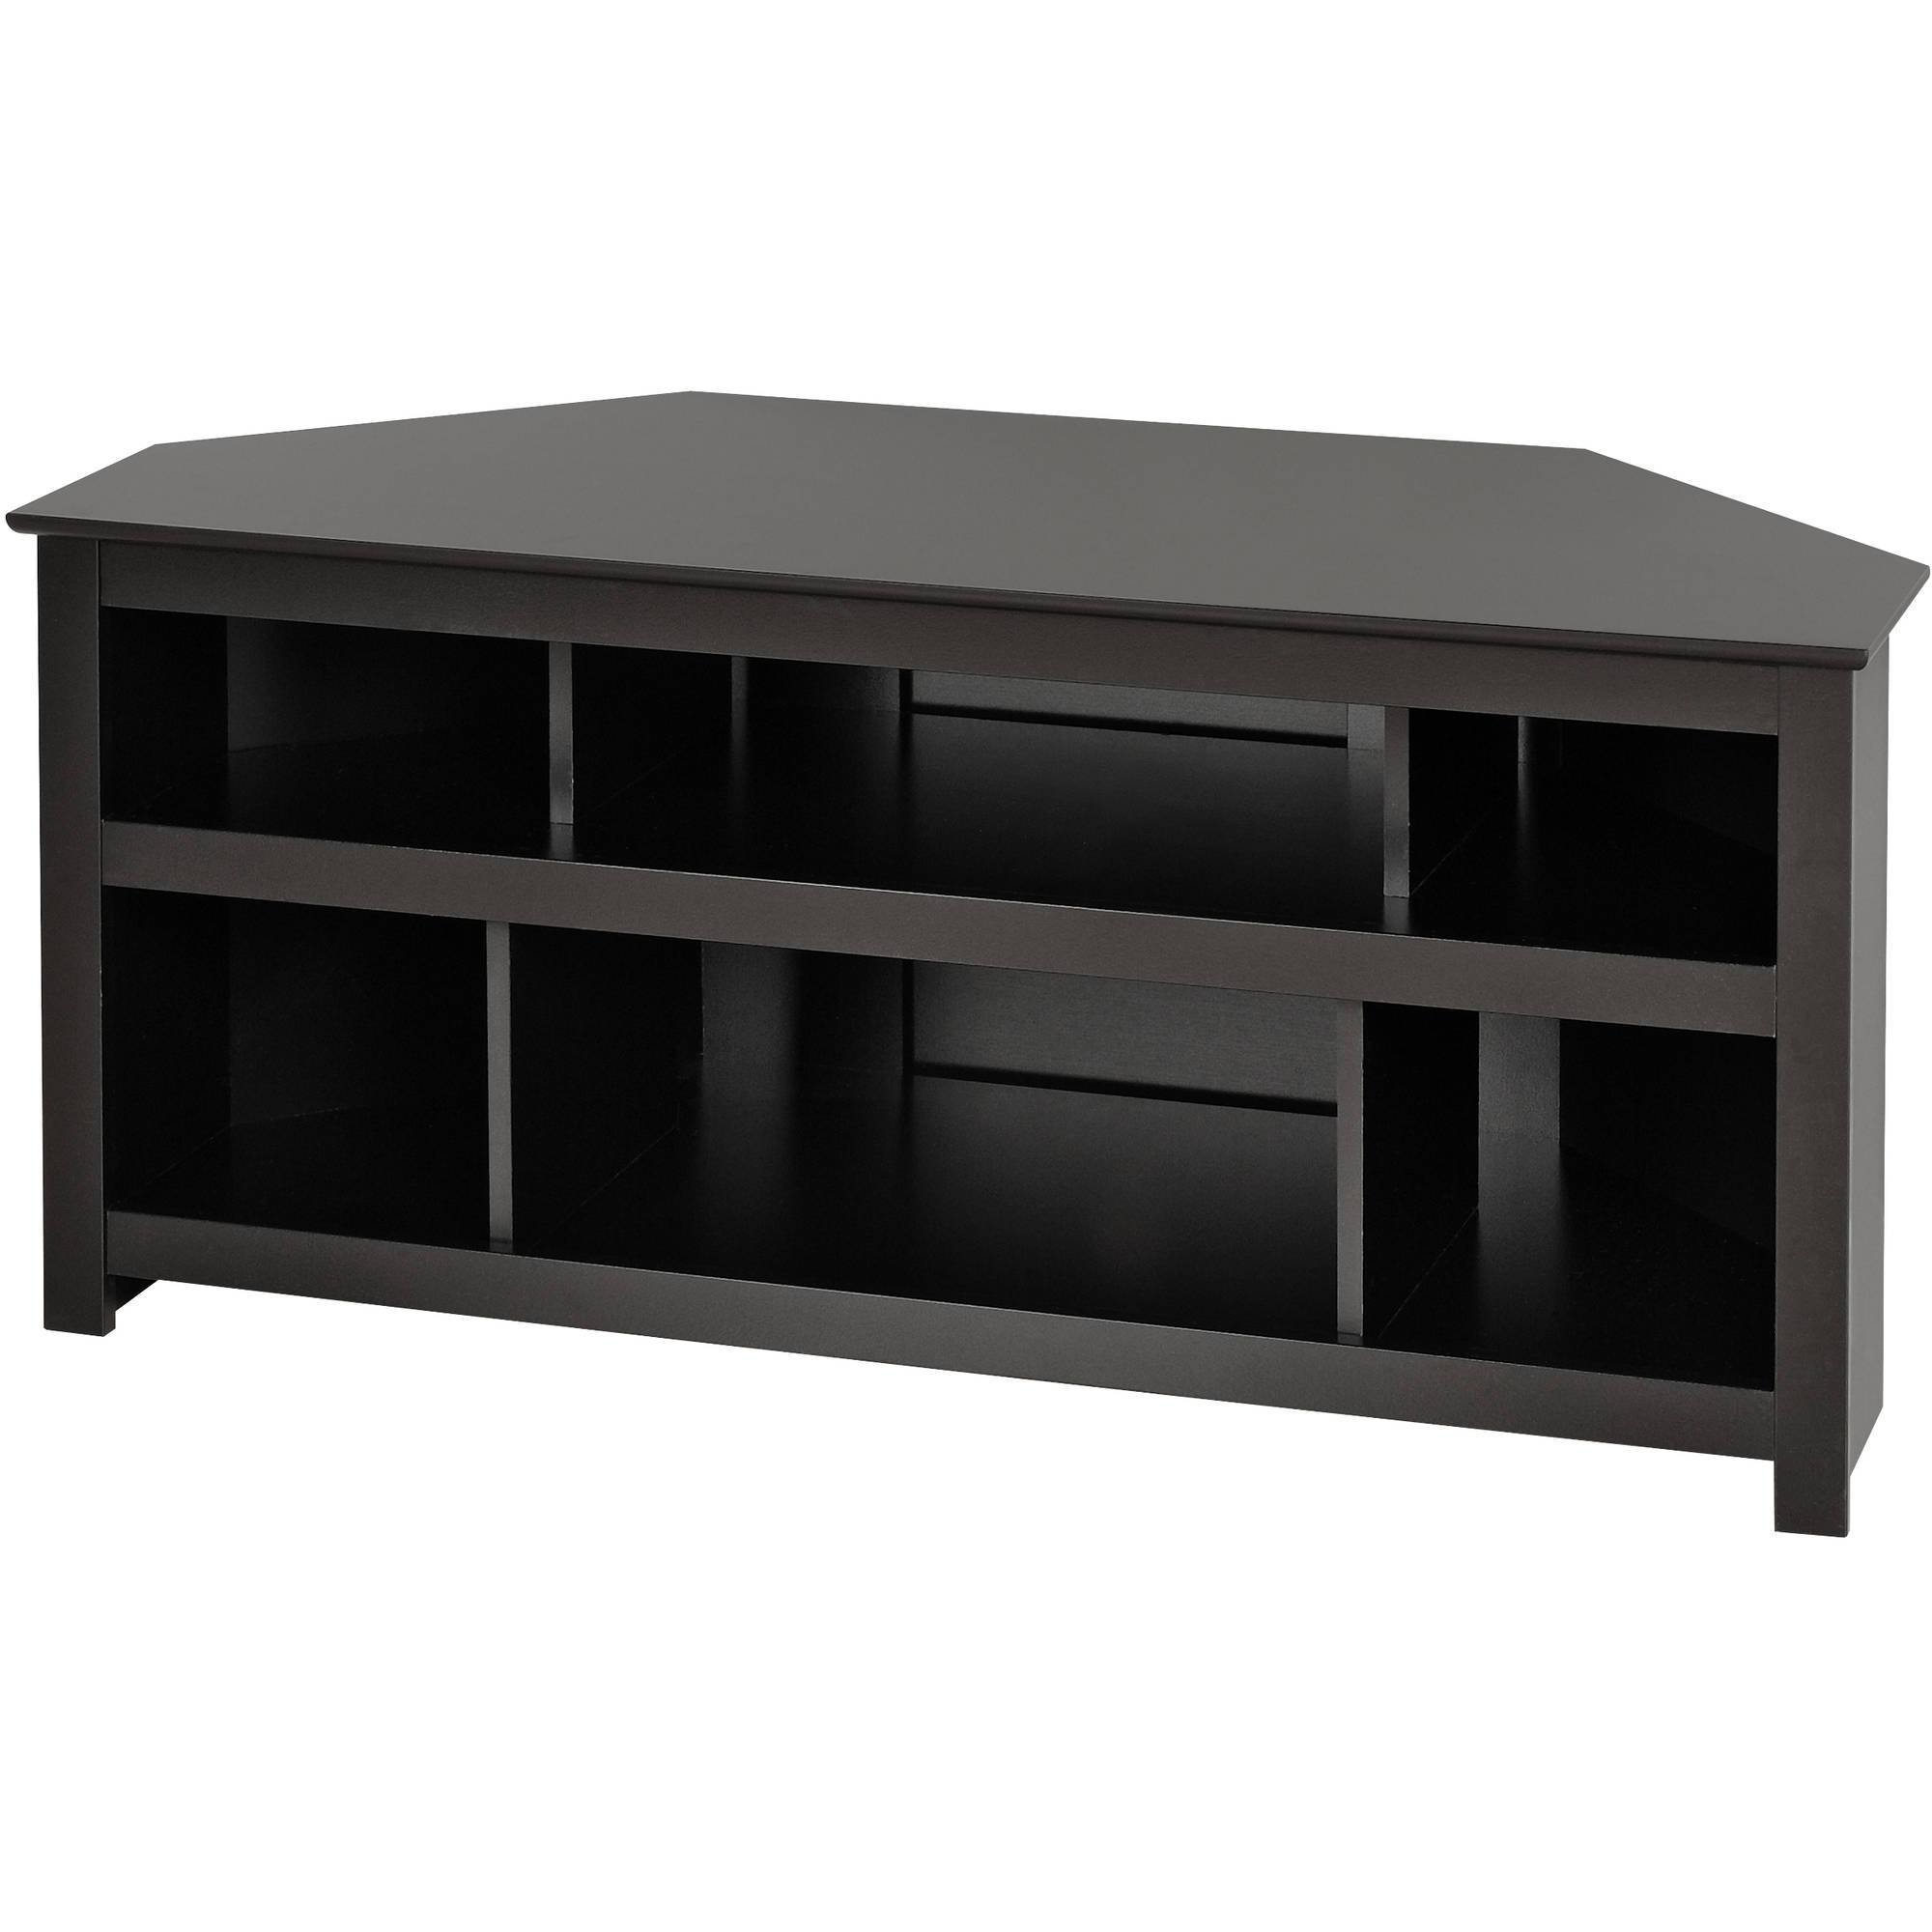 "Prepac Vasari 48"" Corner Tv Stand In Black - Walmart regarding Black Corner Tv Cabinets (Image 10 of 15)"